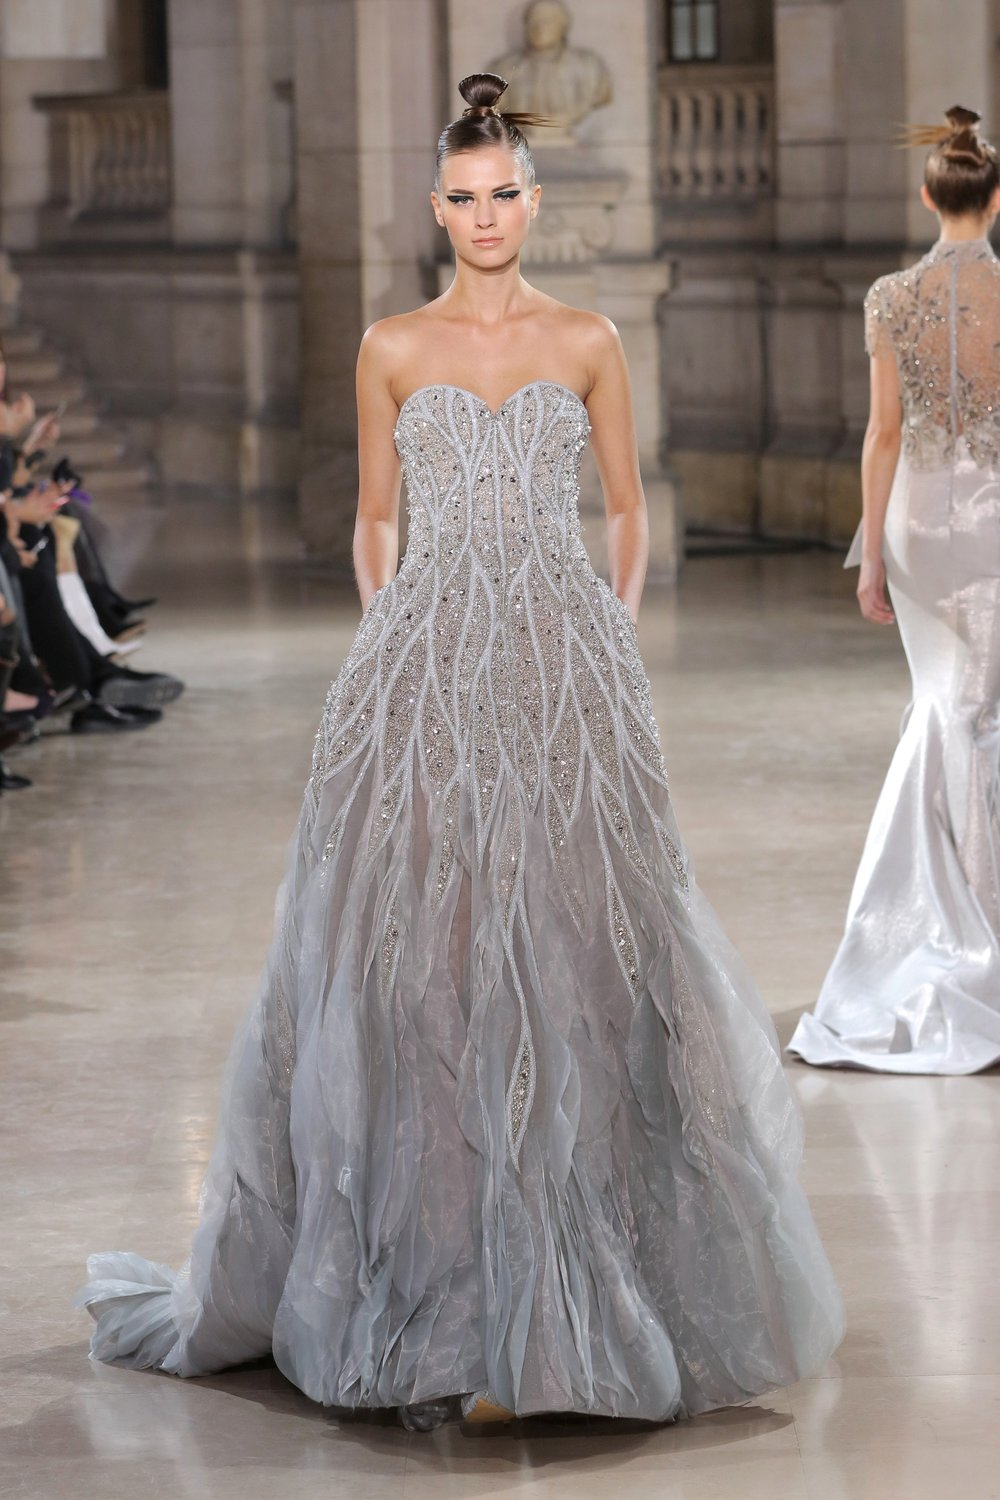 TONY_WARD_COUTURE_SS19_34.jpg